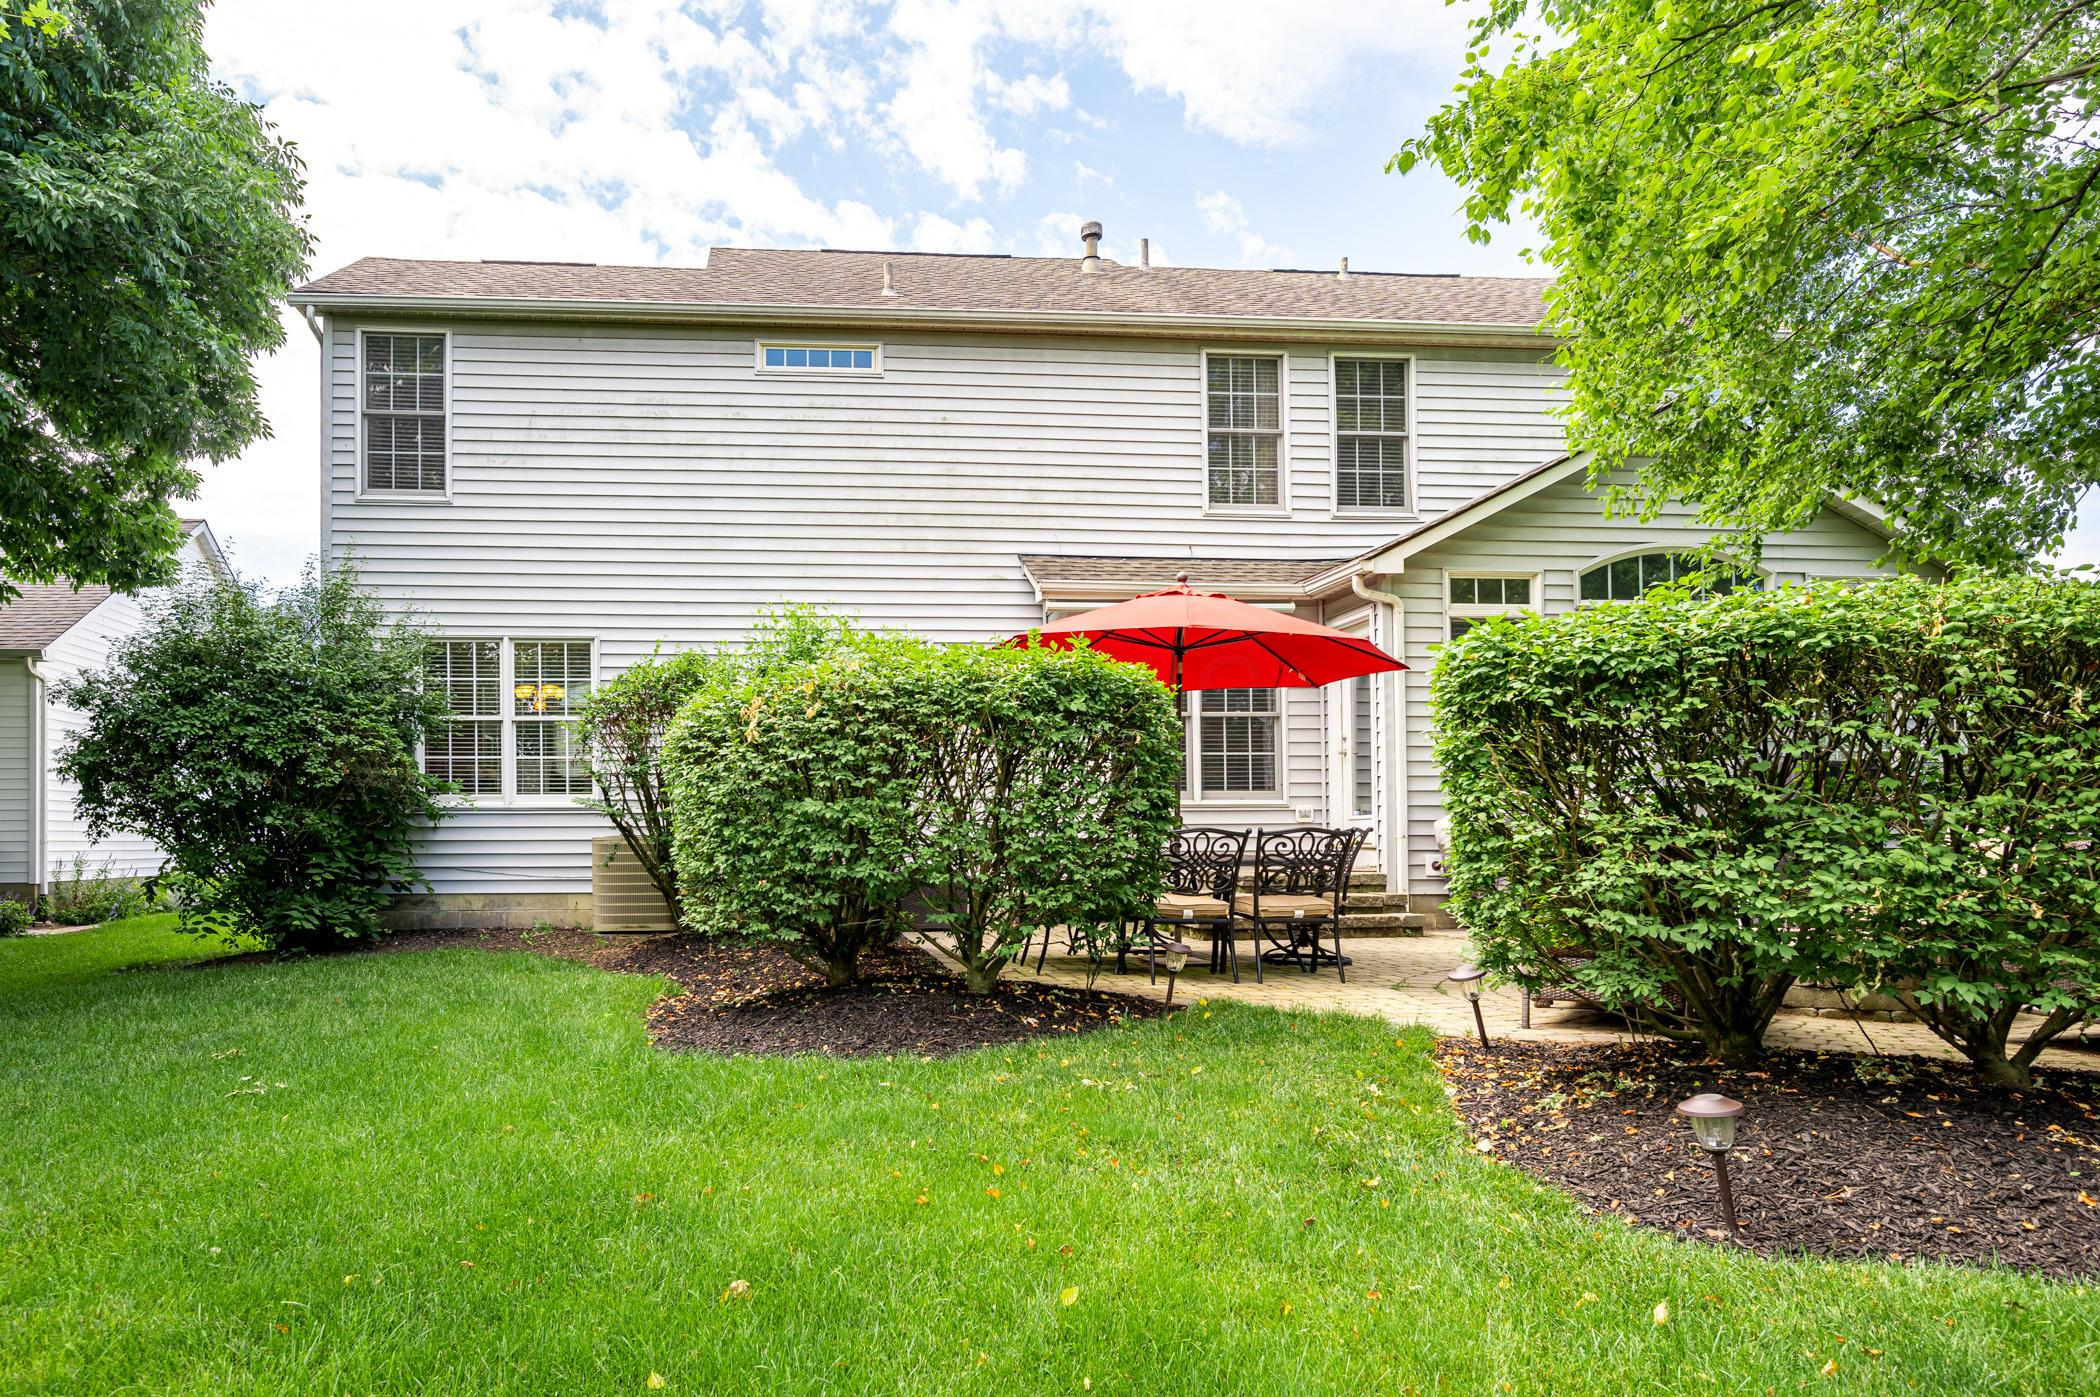 5884 Lakeview Drive, Hilliard, Ohio 43026, 3 Bedrooms Bedrooms, ,4 BathroomsBathrooms,Residential,For Sale,Lakeview,220020593